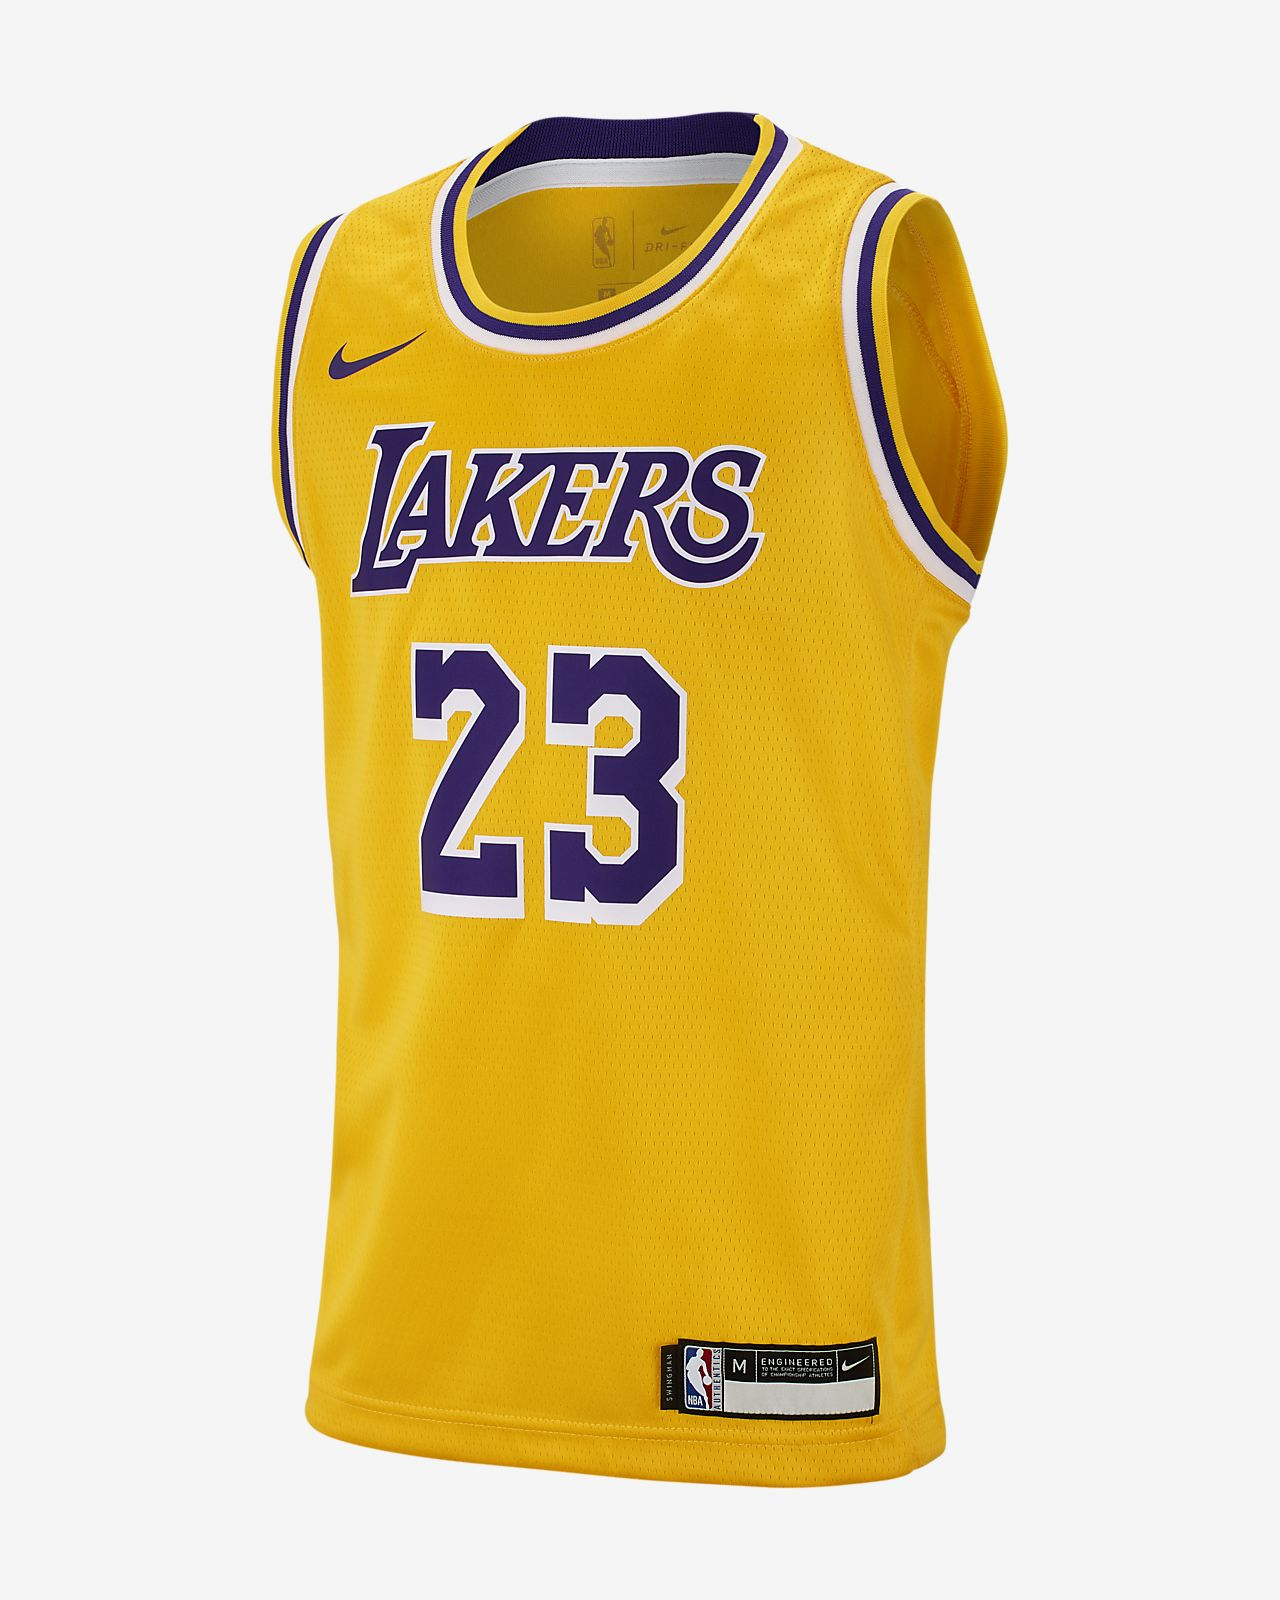 ca42cf4890c Big Kids  Nike NBA Jersey. LeBron James Icon Edition Swingman (Los Angeles  Lakers)